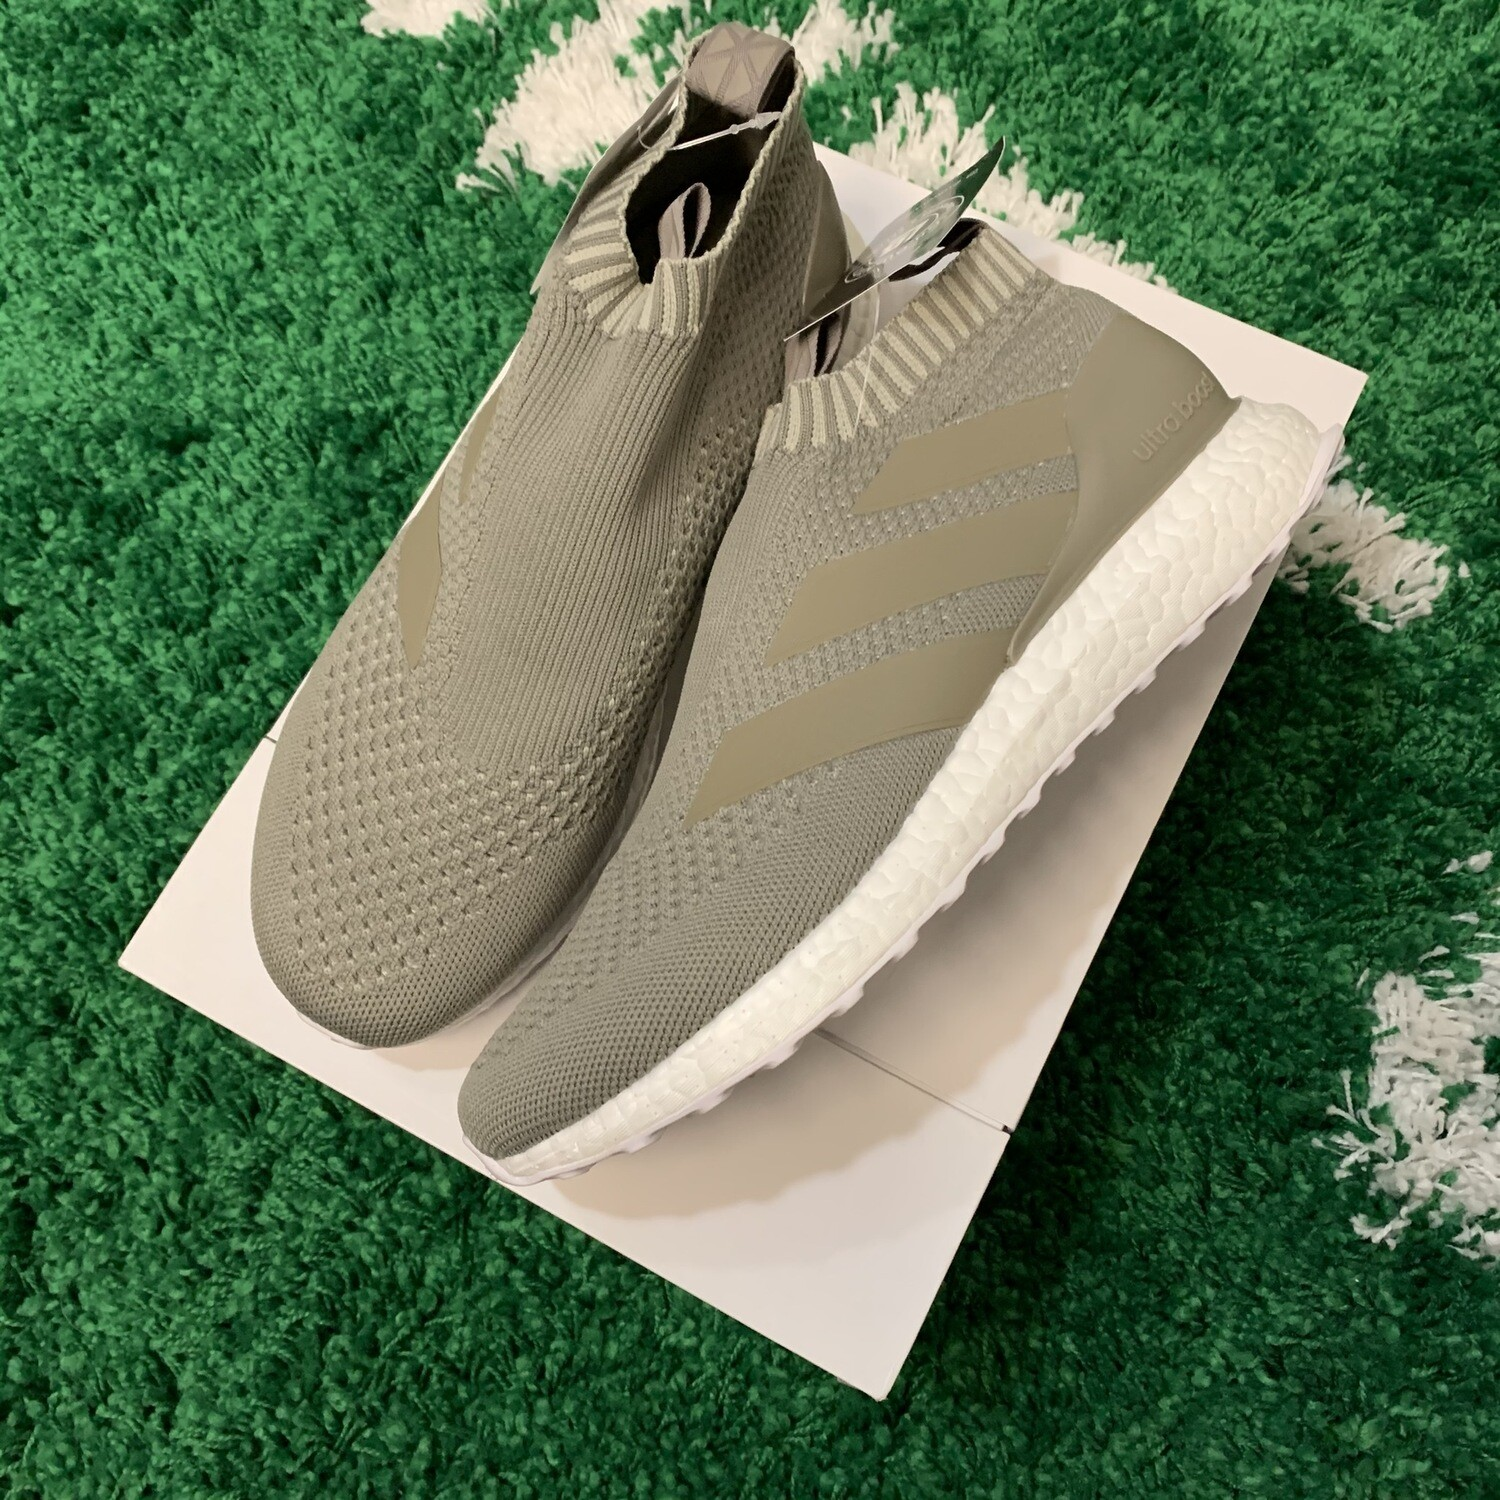 Adidas ACE 16+ Purecontrol Ultra Boost Clay Size 10